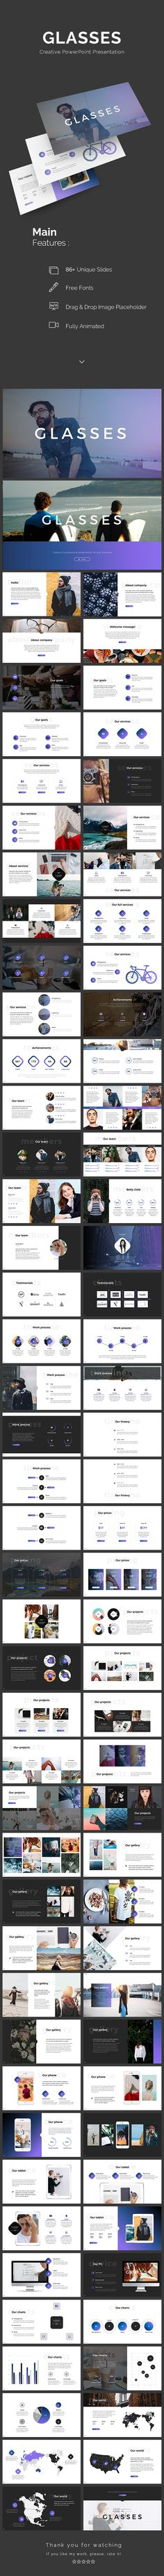 Glasses PowerPoint Template — Powerpoint PPT #1920x1080 #simple • Download ➝ https://graphicriver.net/item/glasses-powerpoint-template/20178024?ref=pxcr